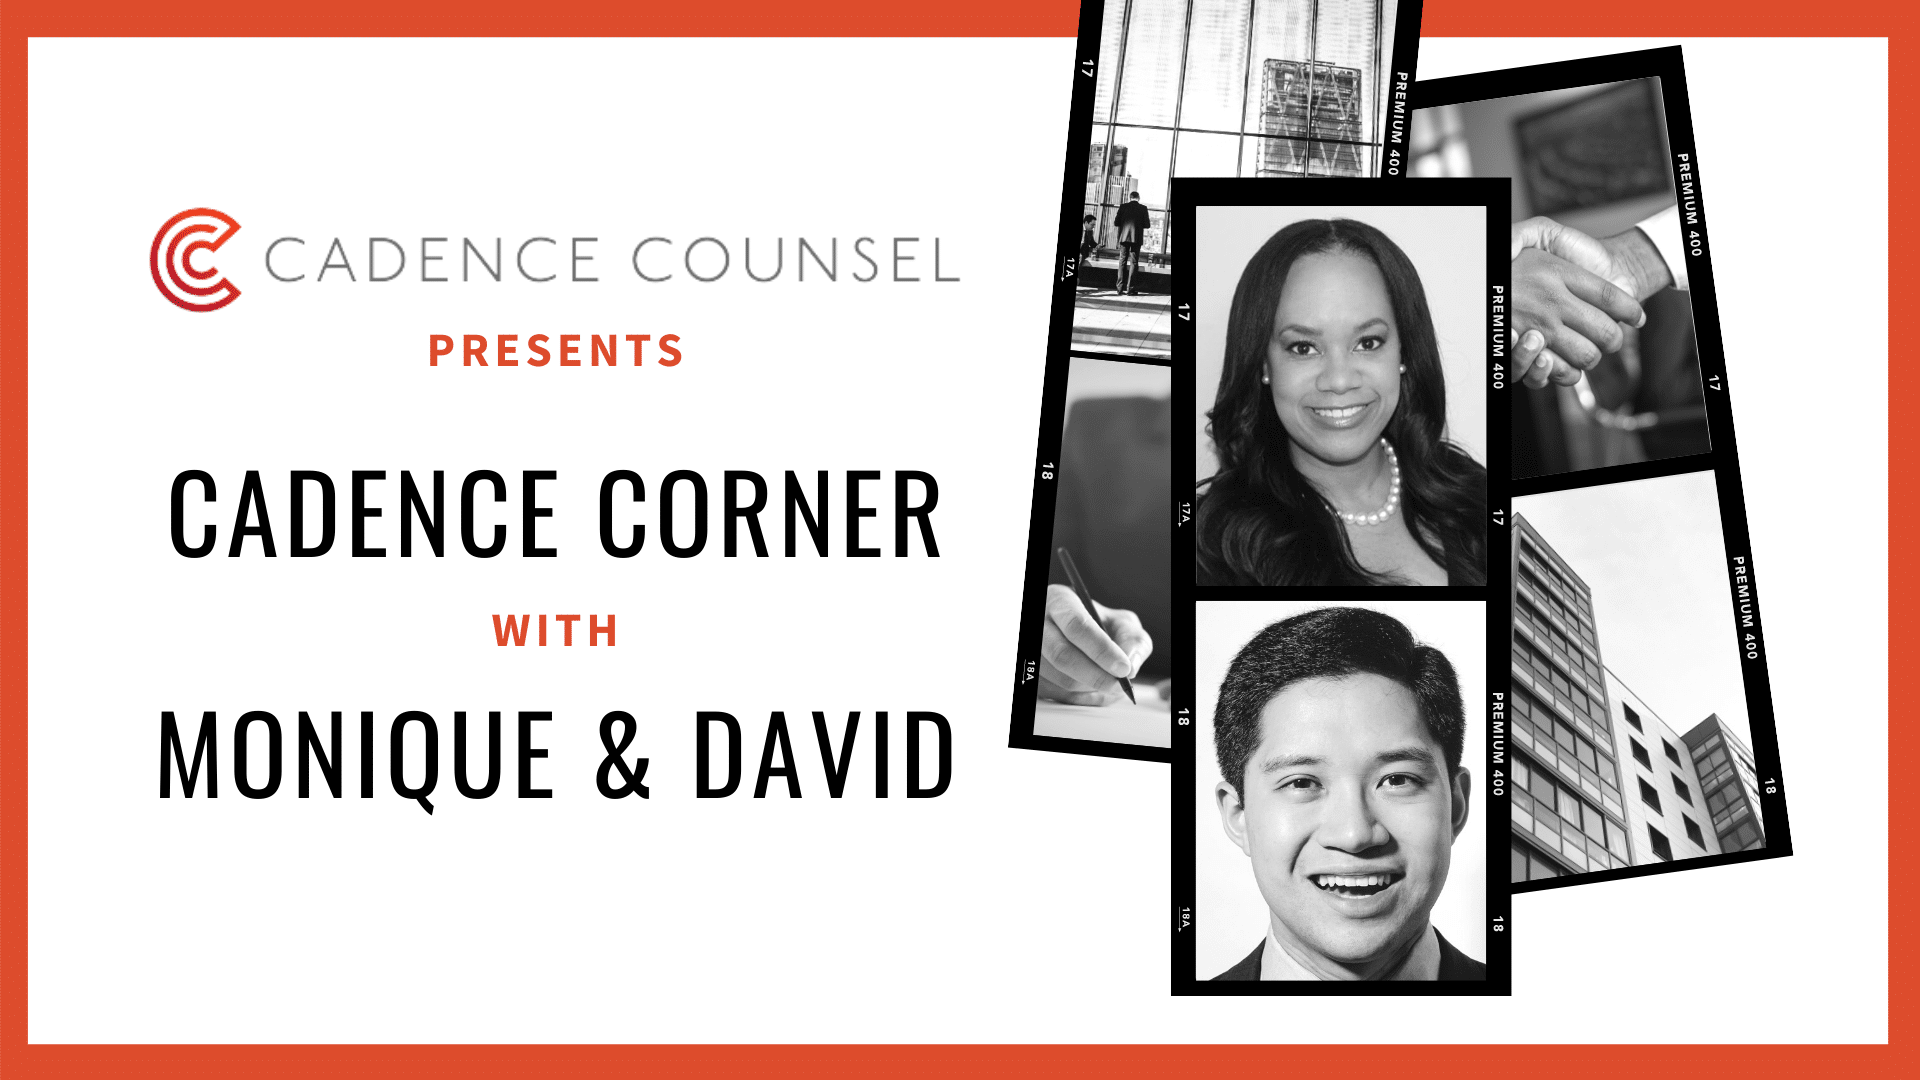 Cadence Corner with Monique & David